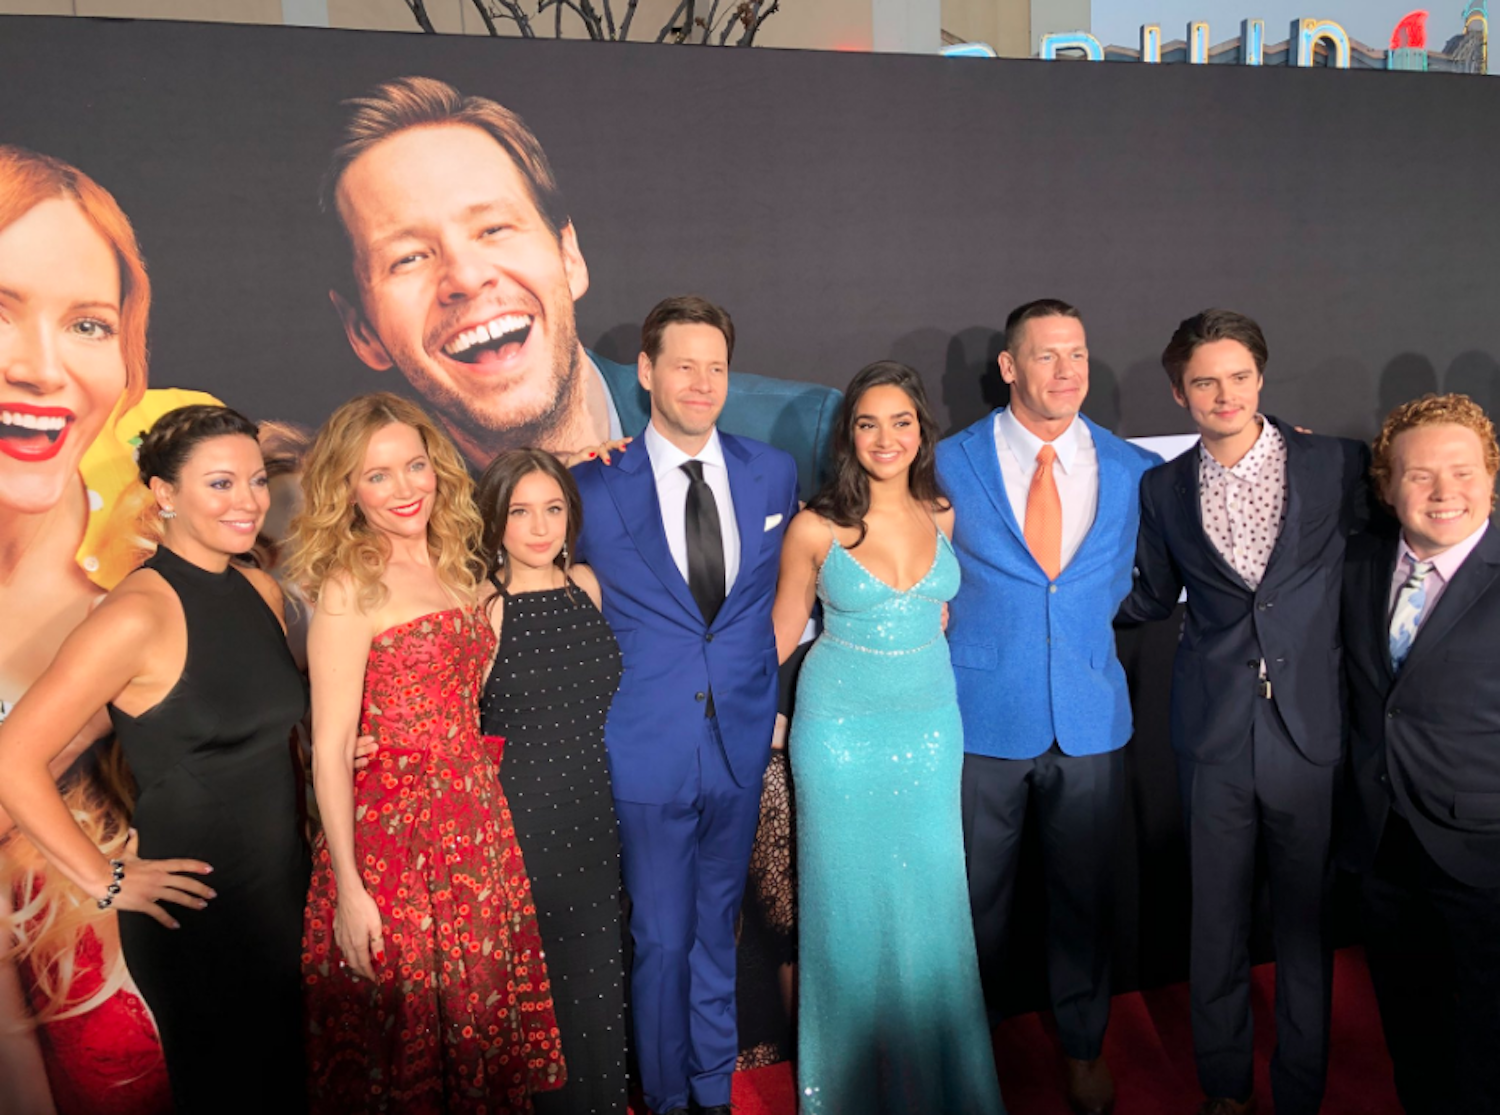 """The cast of """"Blockers"""" at a red carpet event. The new movie premiered on Friday, April 6, 2018. (Screenshot courtesy of  """"Blockers"""" Twitter )"""